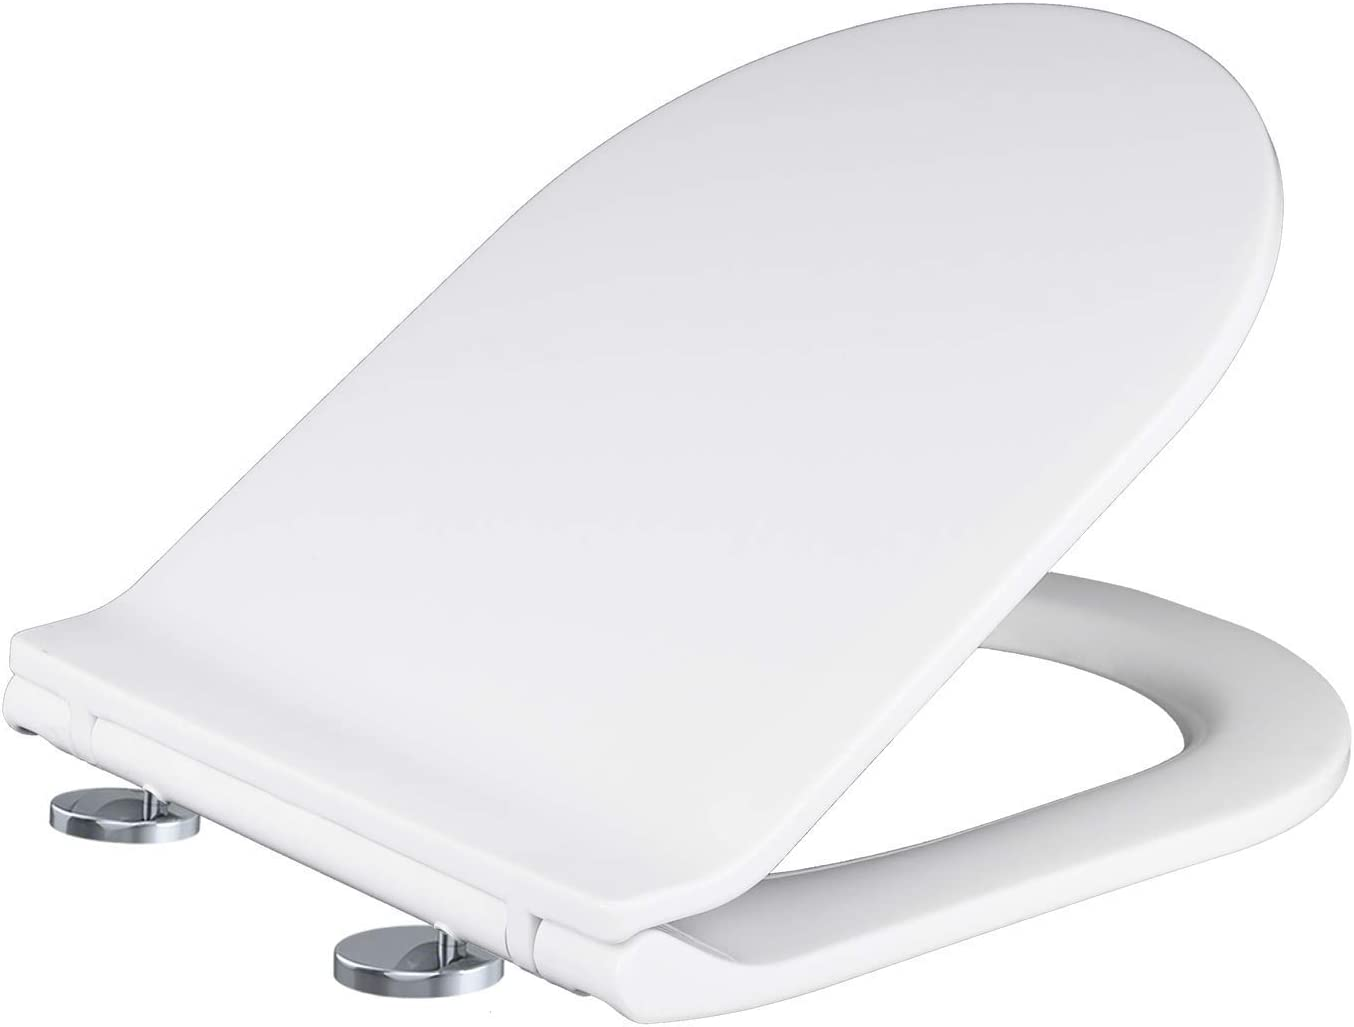 D Shaped (White) Toilet Seat with Soft Close & Quick Release Hinges, PP Material, Easy Installation by Mass Dynamic